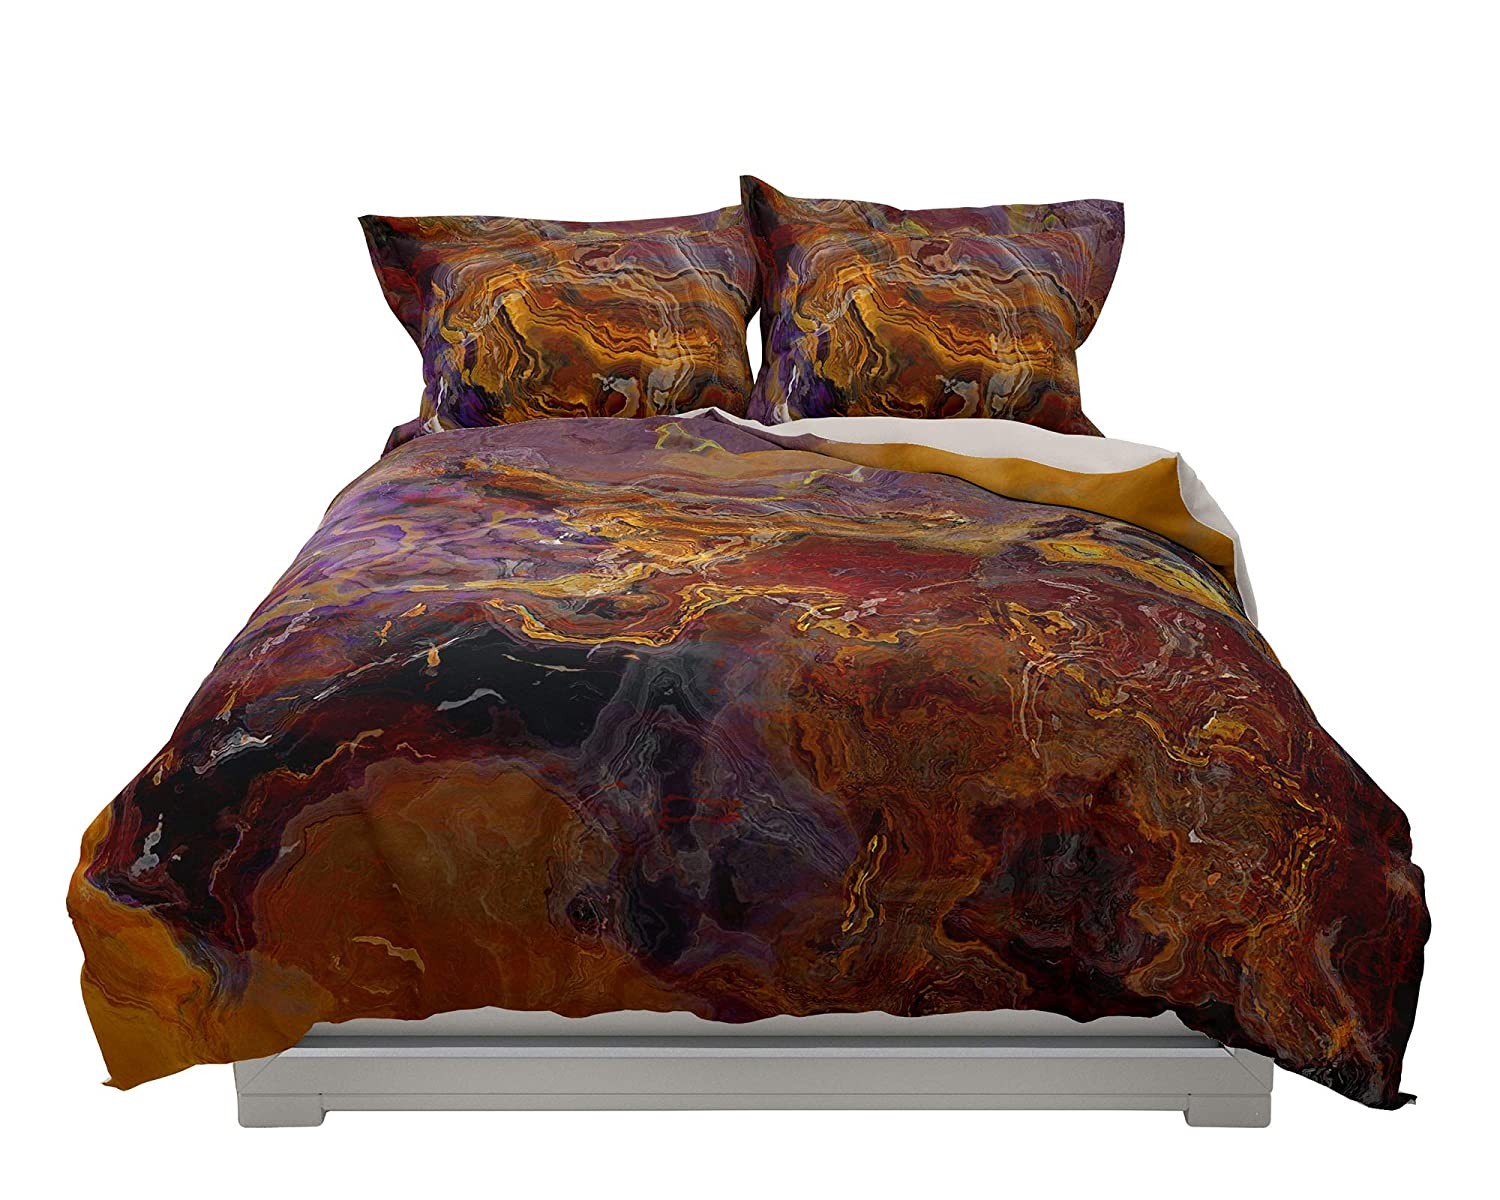 King or Queen Genuine 3 pc Duvet Cover K Riveted art abstract Set Sale price with